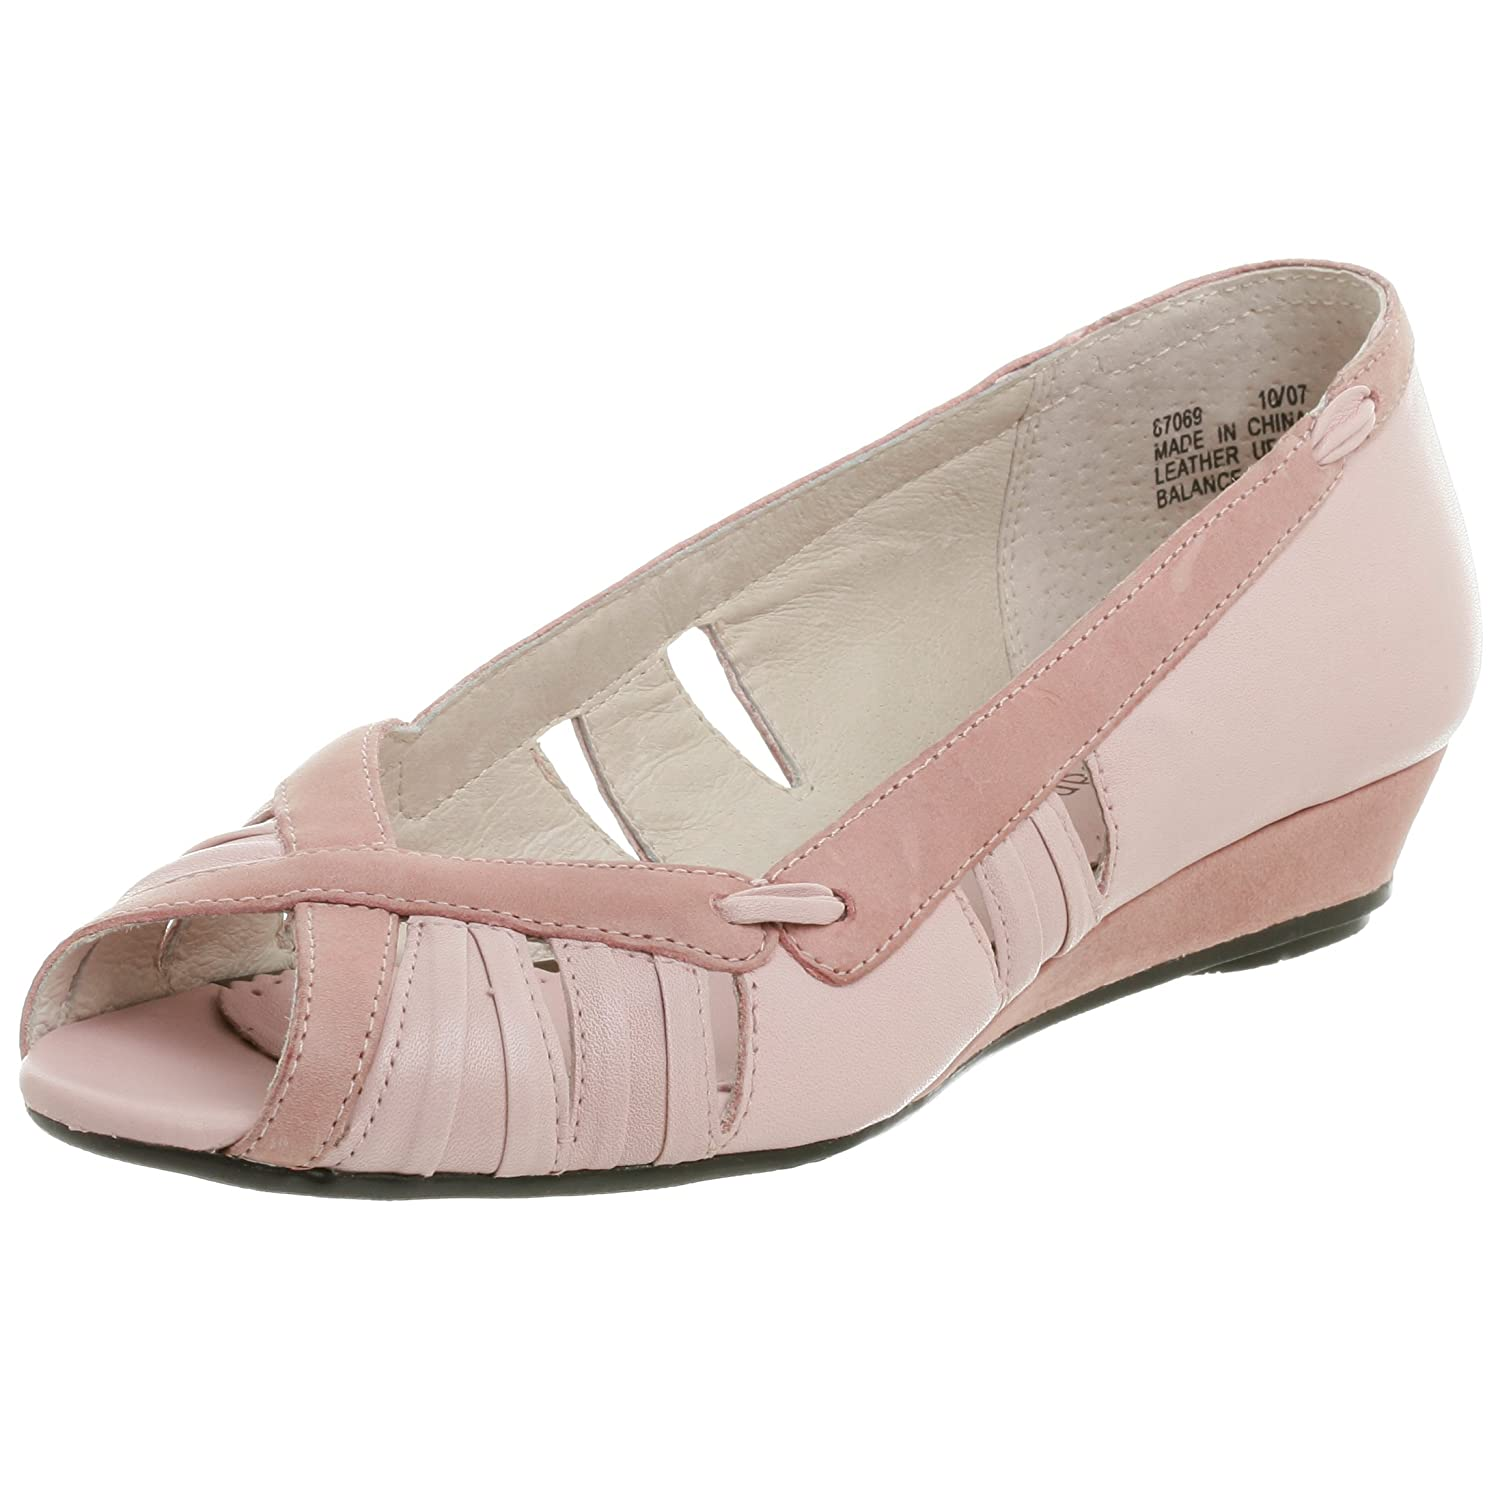 Clarks Women's Essen Wedge - Free Overnight Shipping & Return Shipping: Endless.com :  clarks women pleats peeptoe